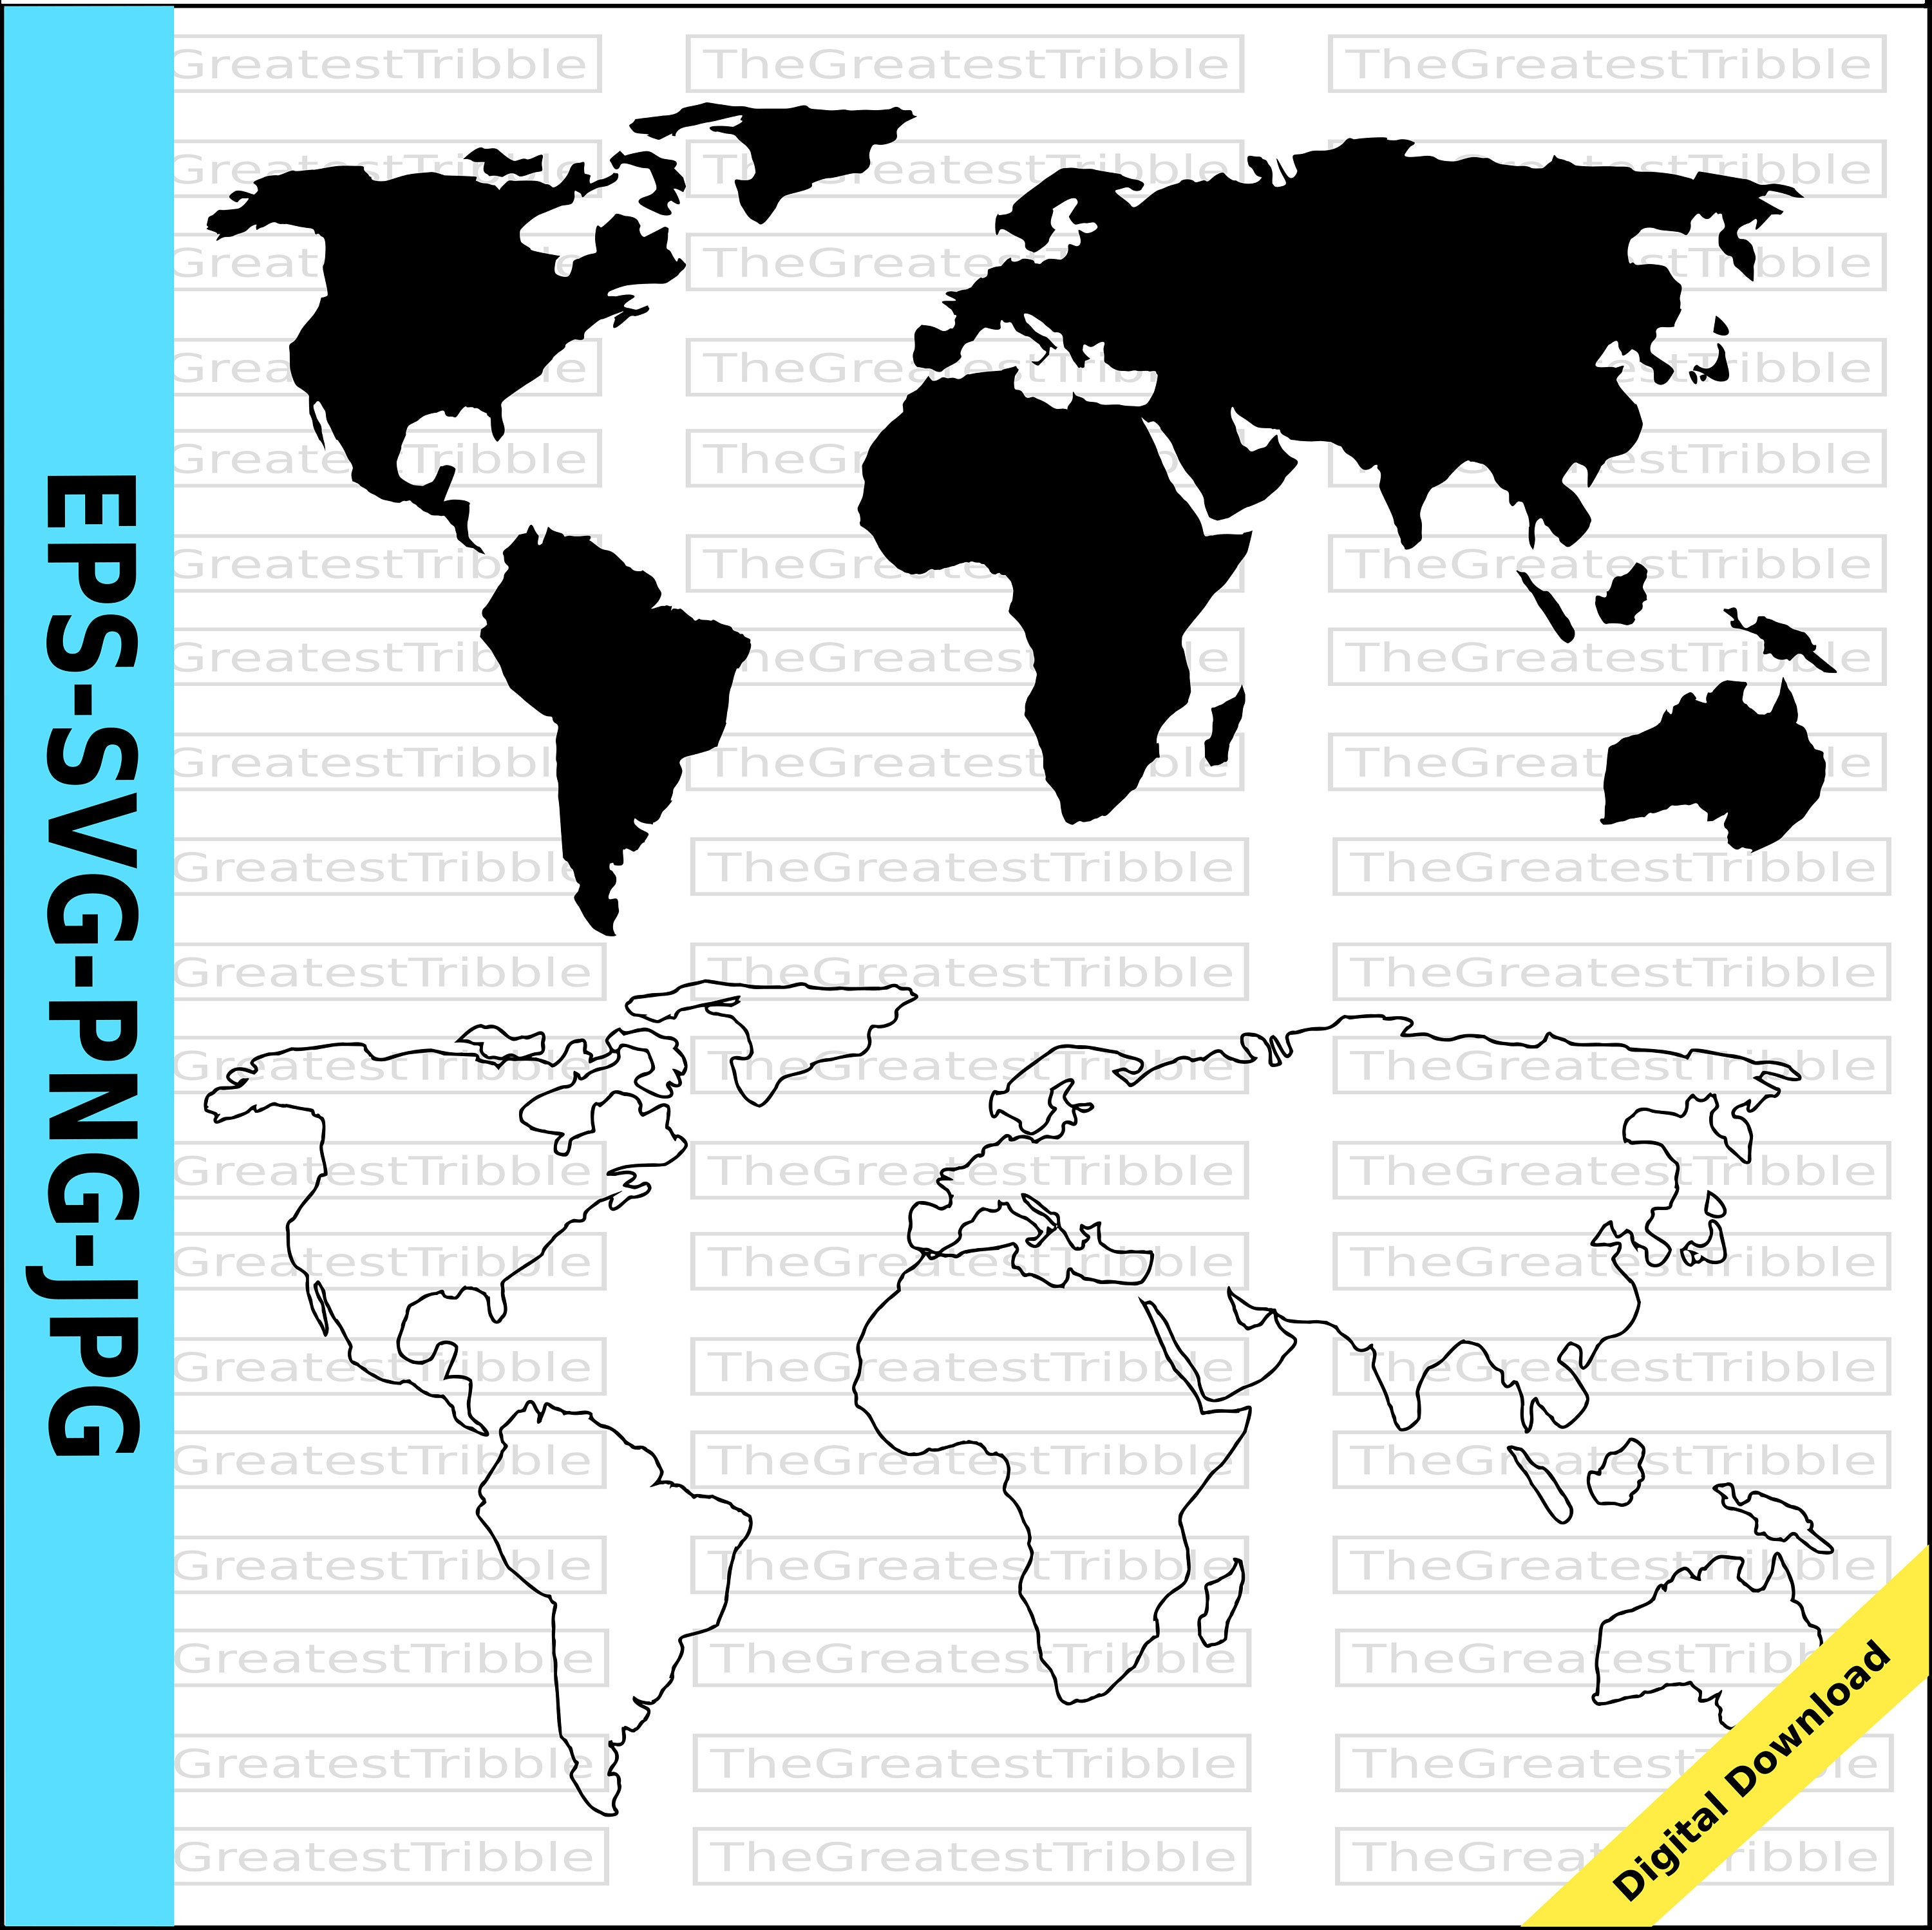 Simple World Map World Countries Map eps svg png jpg Vector Graphic on simple world map with all countries, simple world map printable, simple world map with continents, simple world map with grid, simple old world map, topographic map, simple europe map, simple climate map, simple world map with oceans, simple blank world map, simple flat world map, seven wonders of the world, simple world map travel, continents of the world, thematic map, simple world map drawing, simple world map political, countries of the world, simple us map, flags of the world, simple united states map, mappa mundi, simple globe map,